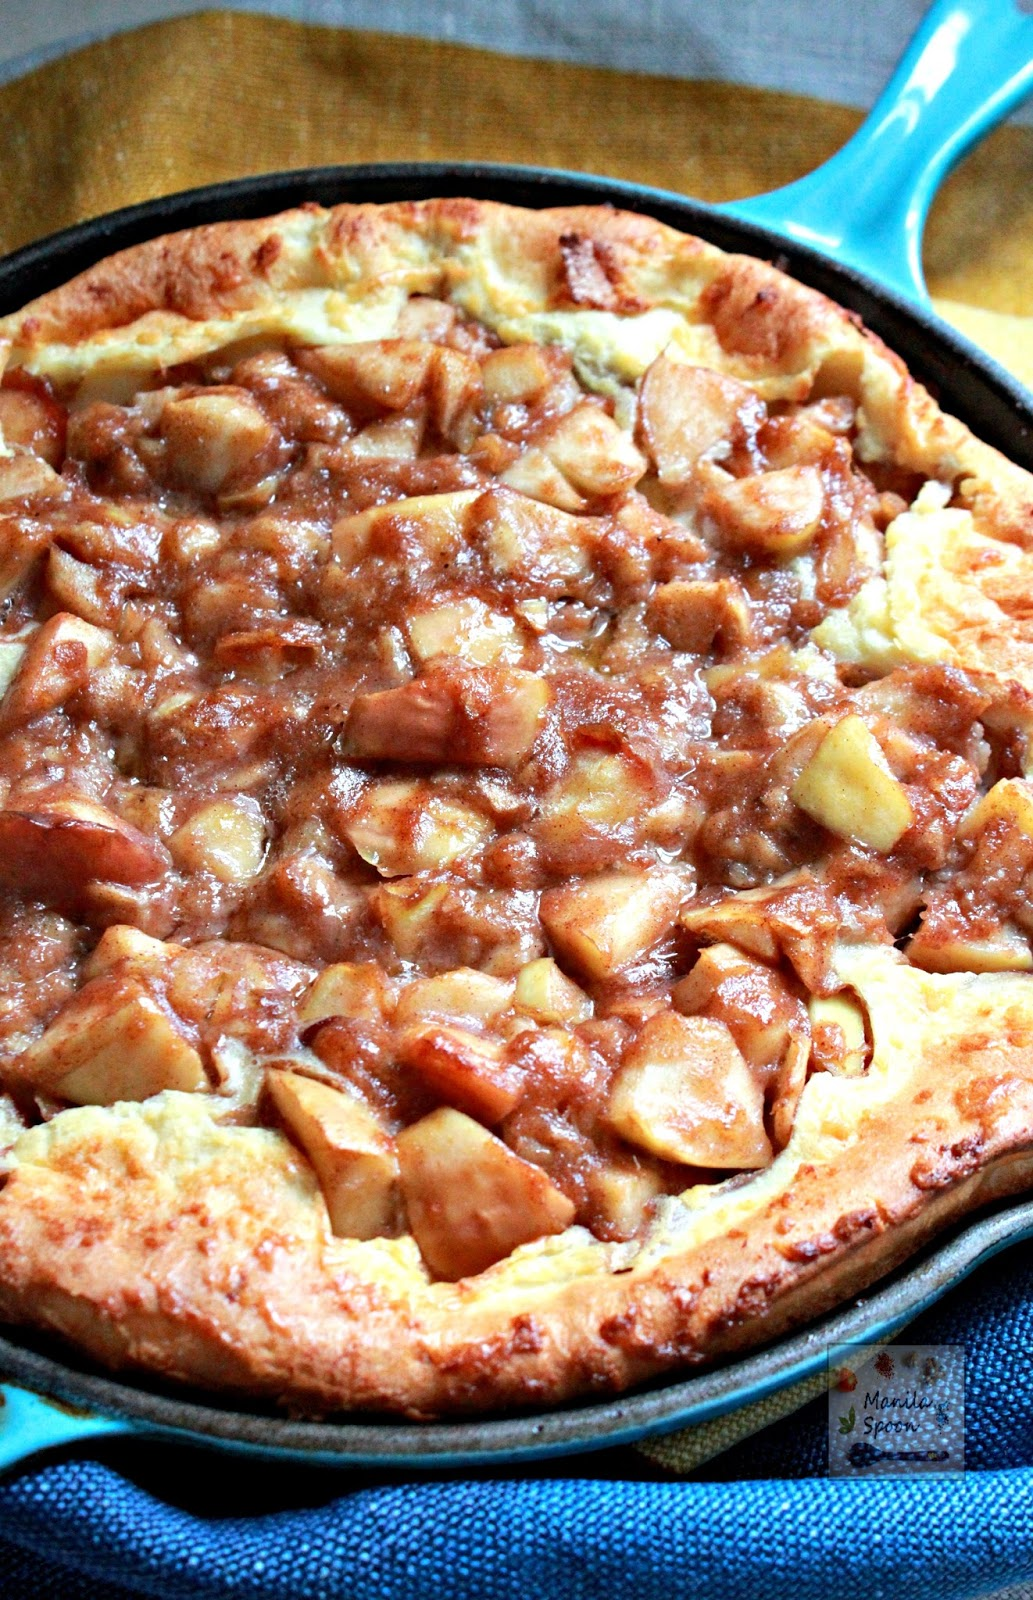 Dutch Baby Pancake with Spiced Apples and Bananas